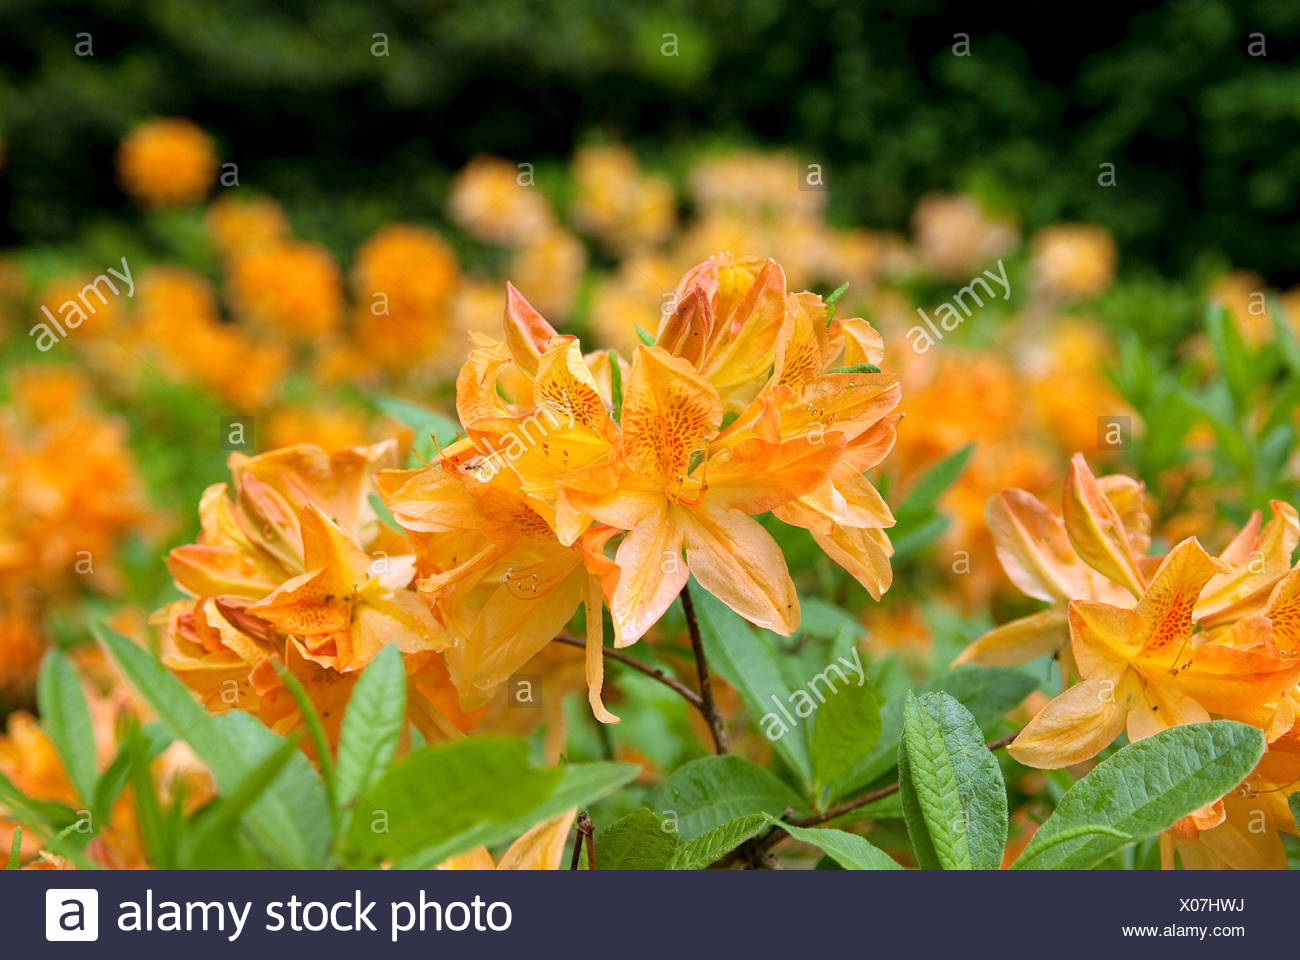 rhododendron (Rhododendron luteum 'T.J. Seidel', Rhododendron luteum T.J. Seidel), cultivar Joseph Dietzgen Stock Photo